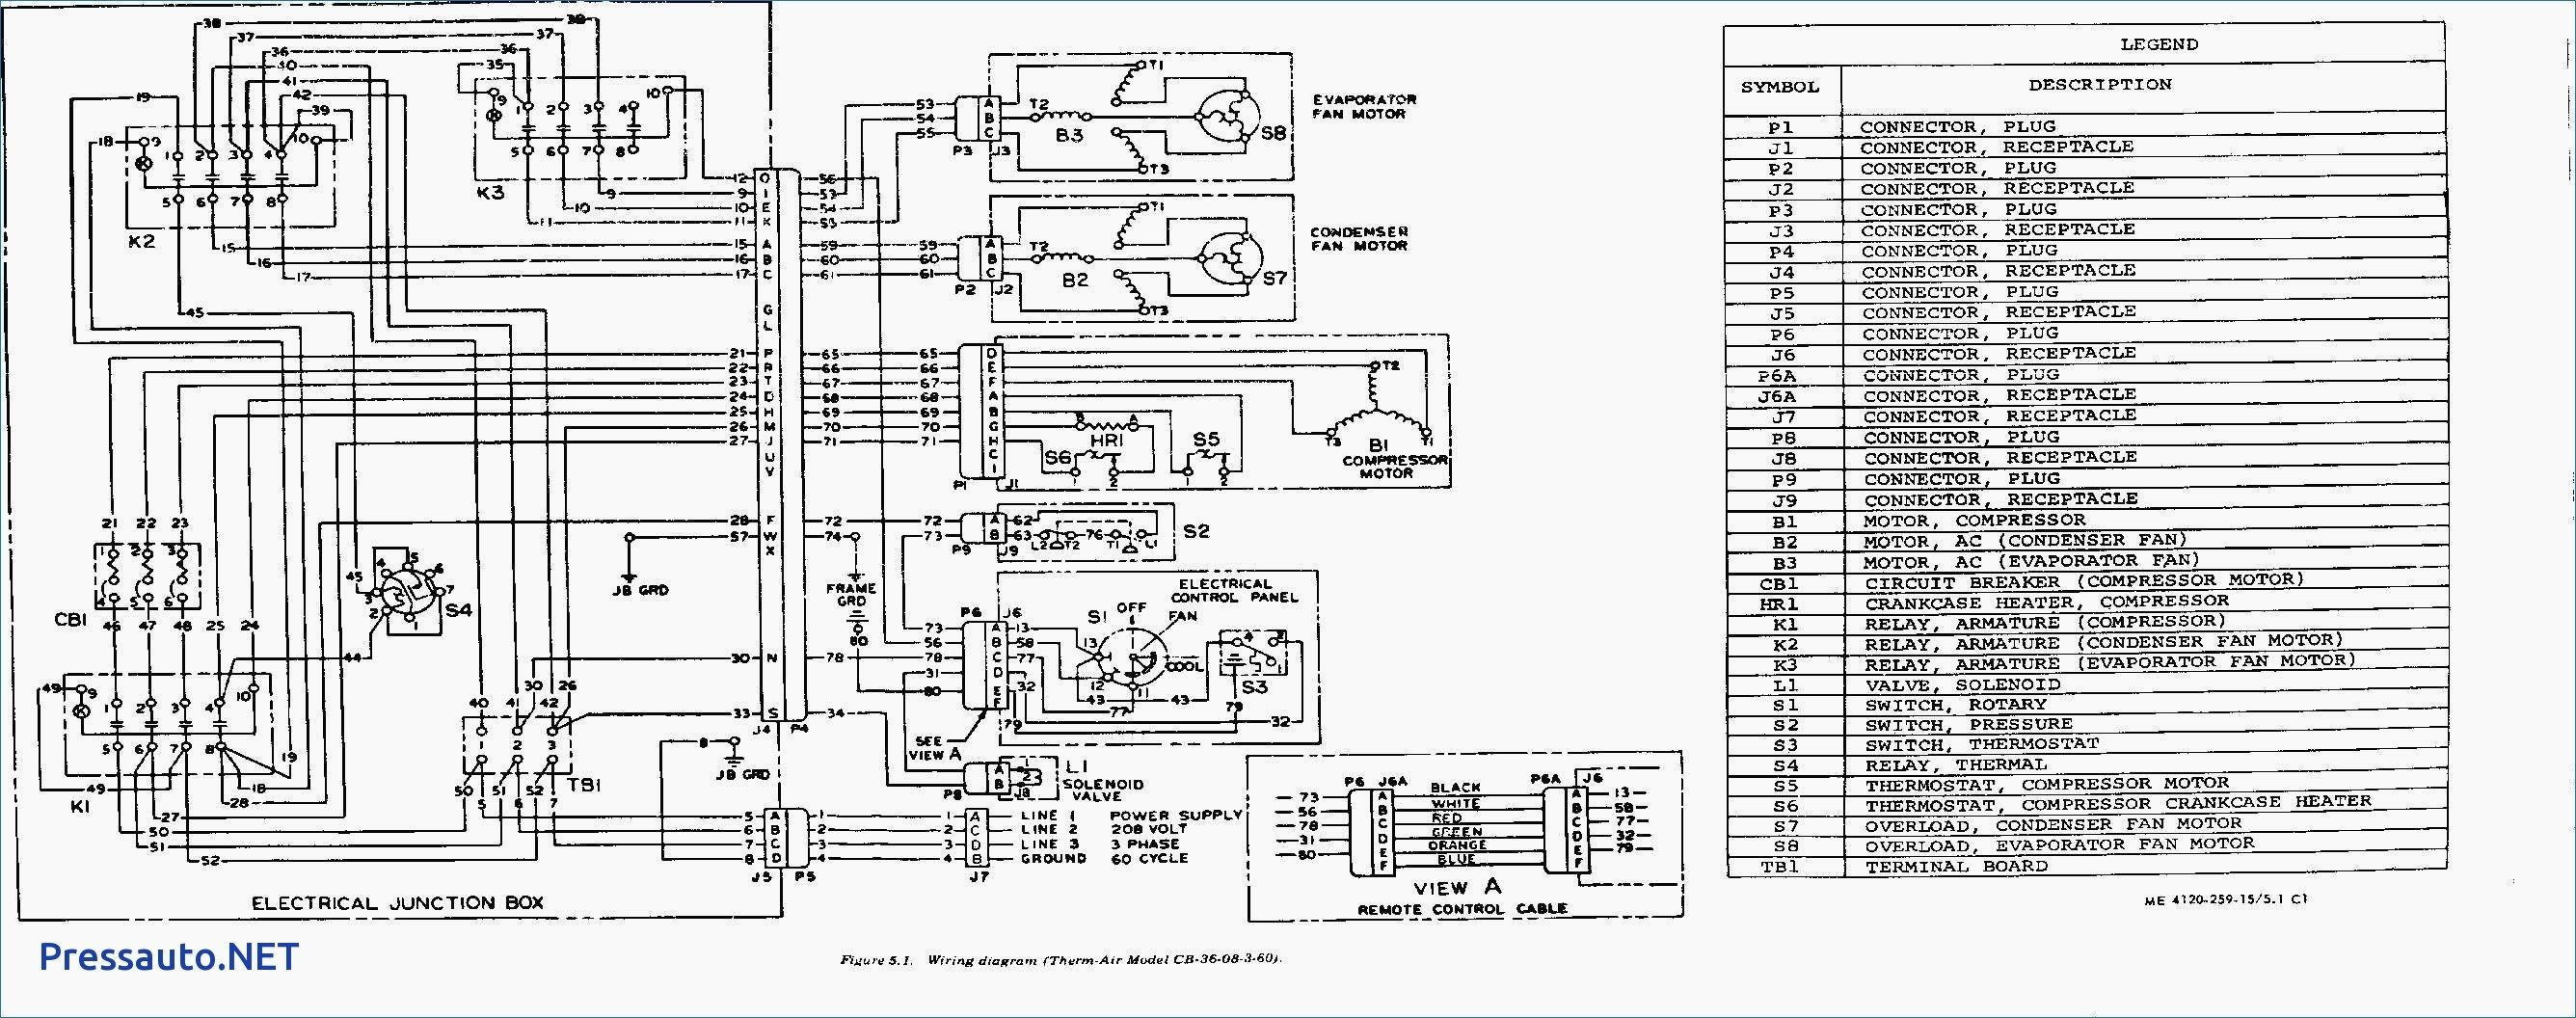 medium resolution of trane wiring diagram thoritsolutions com and rooftop unit on trane pertaining to trane wiring diagram